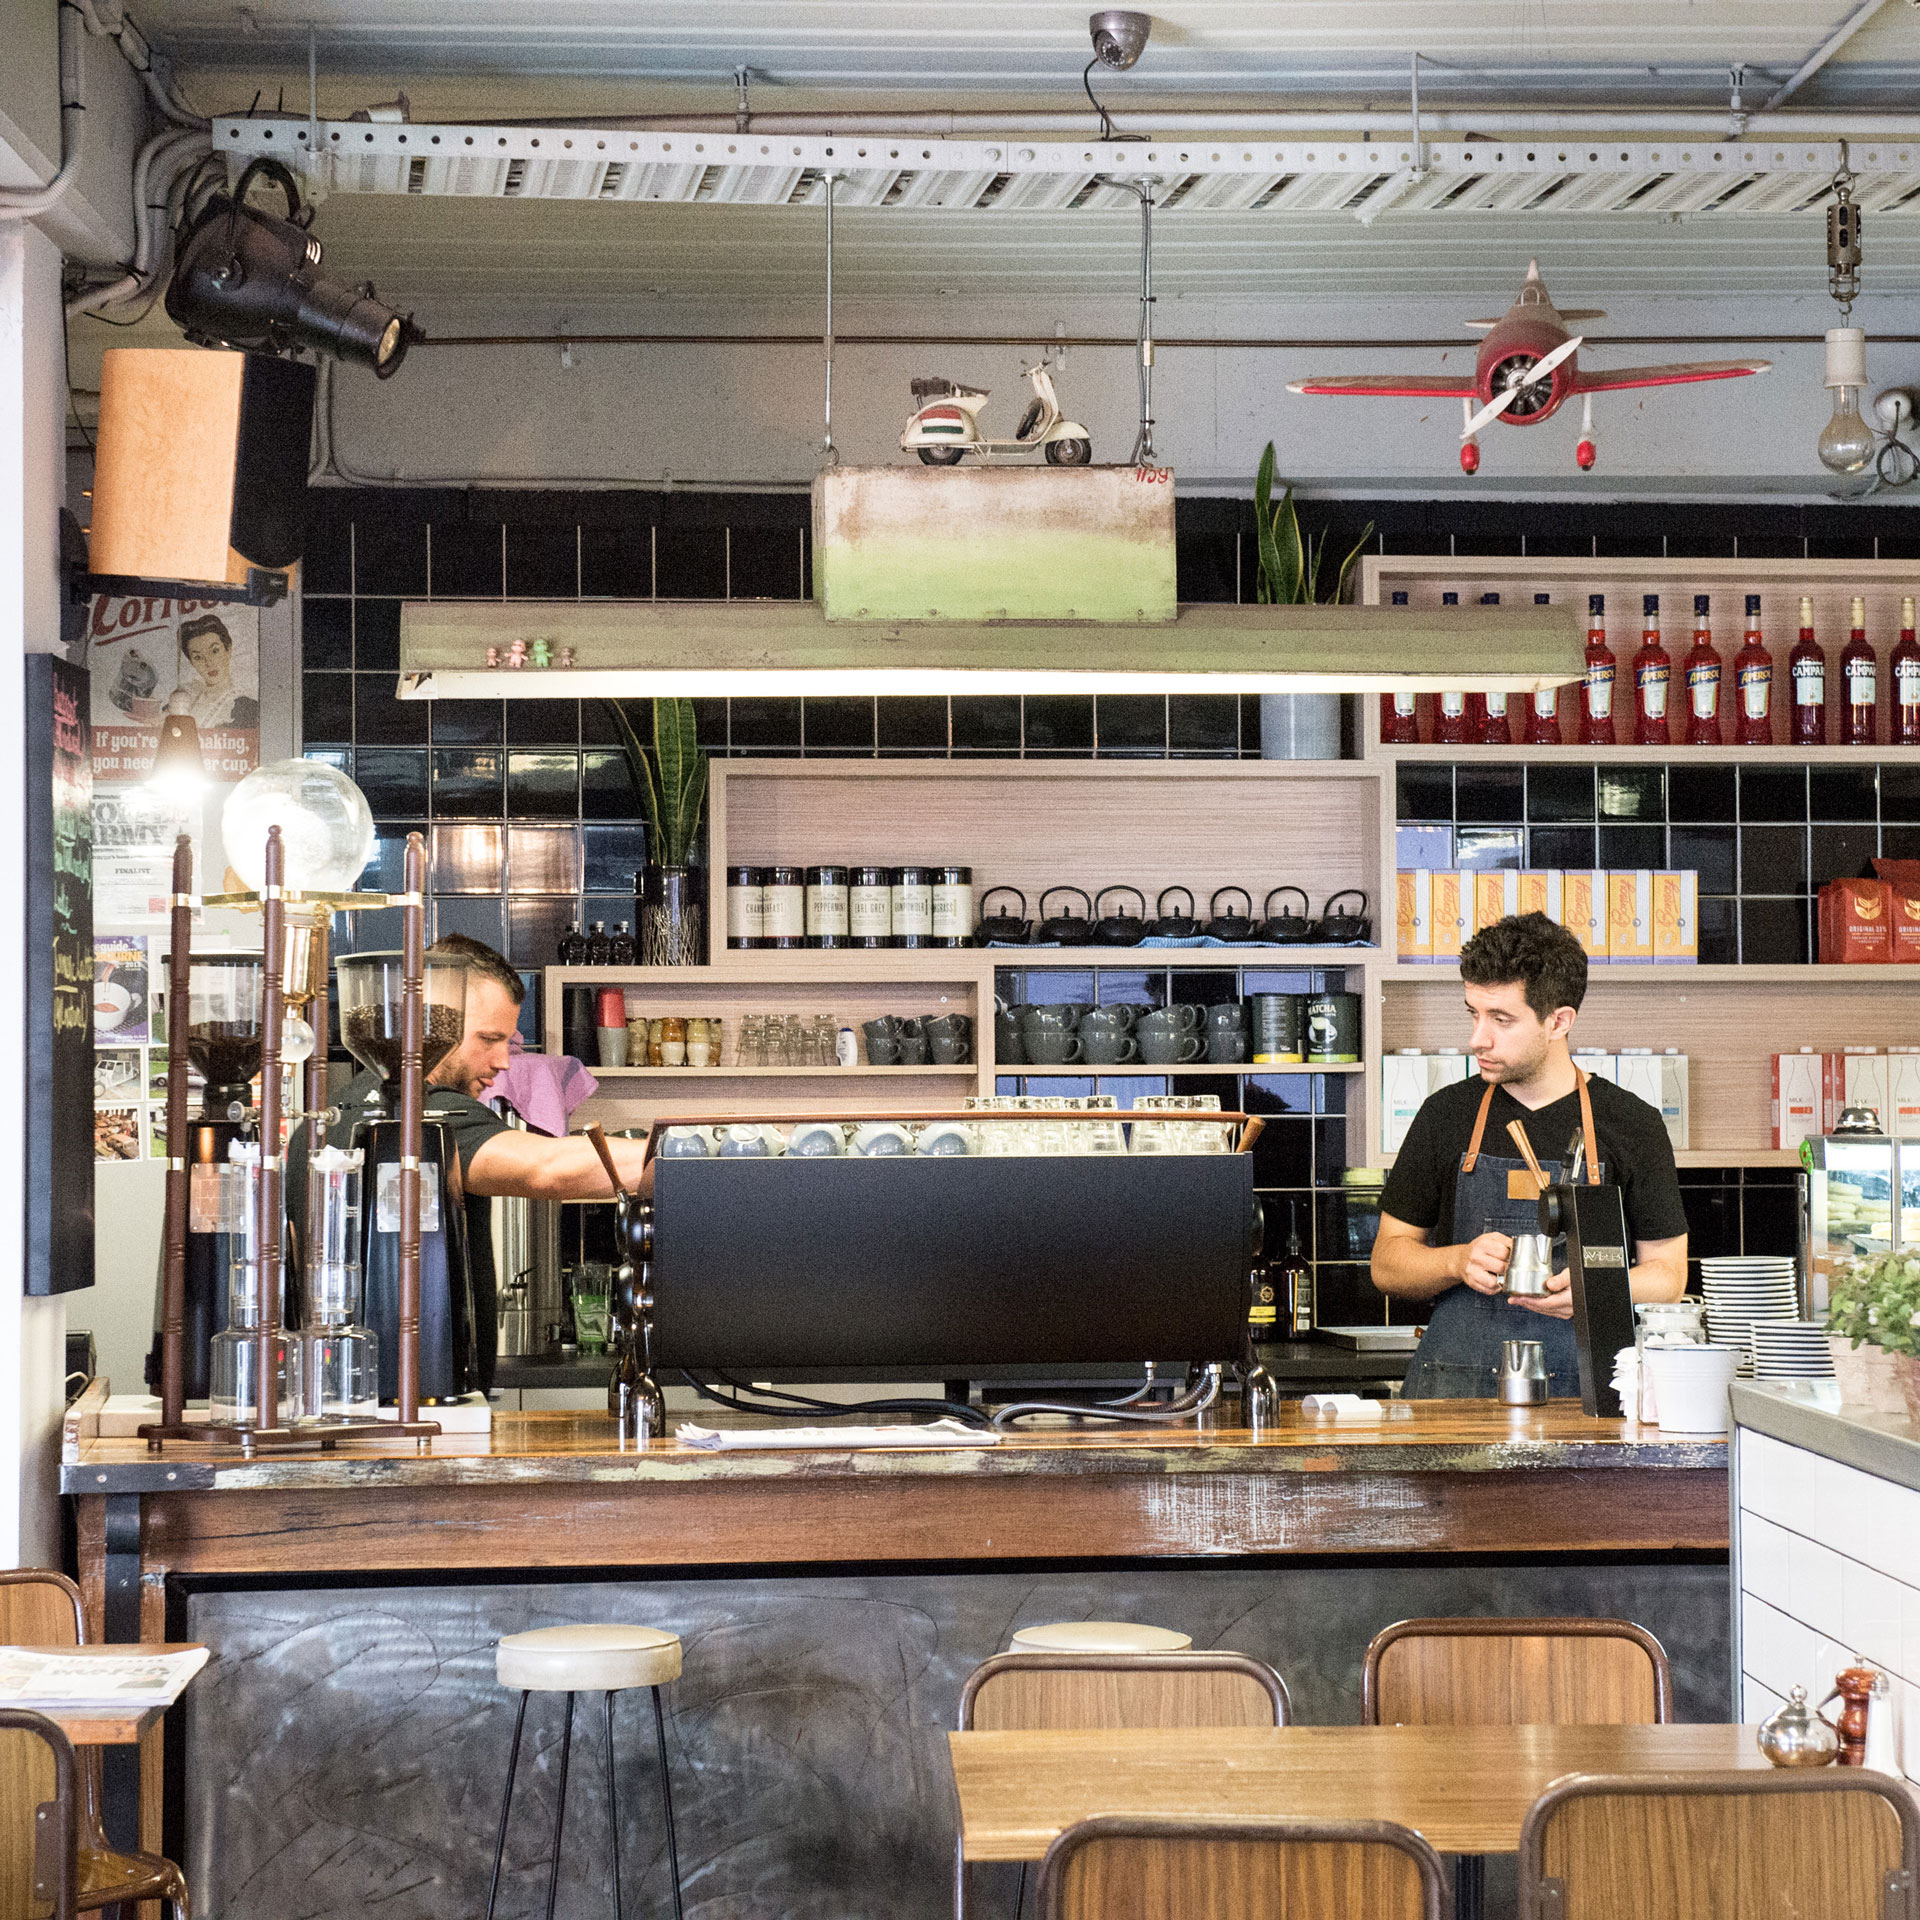 Home - image Espresso-Room-248 on https://theespressoroom.com.au